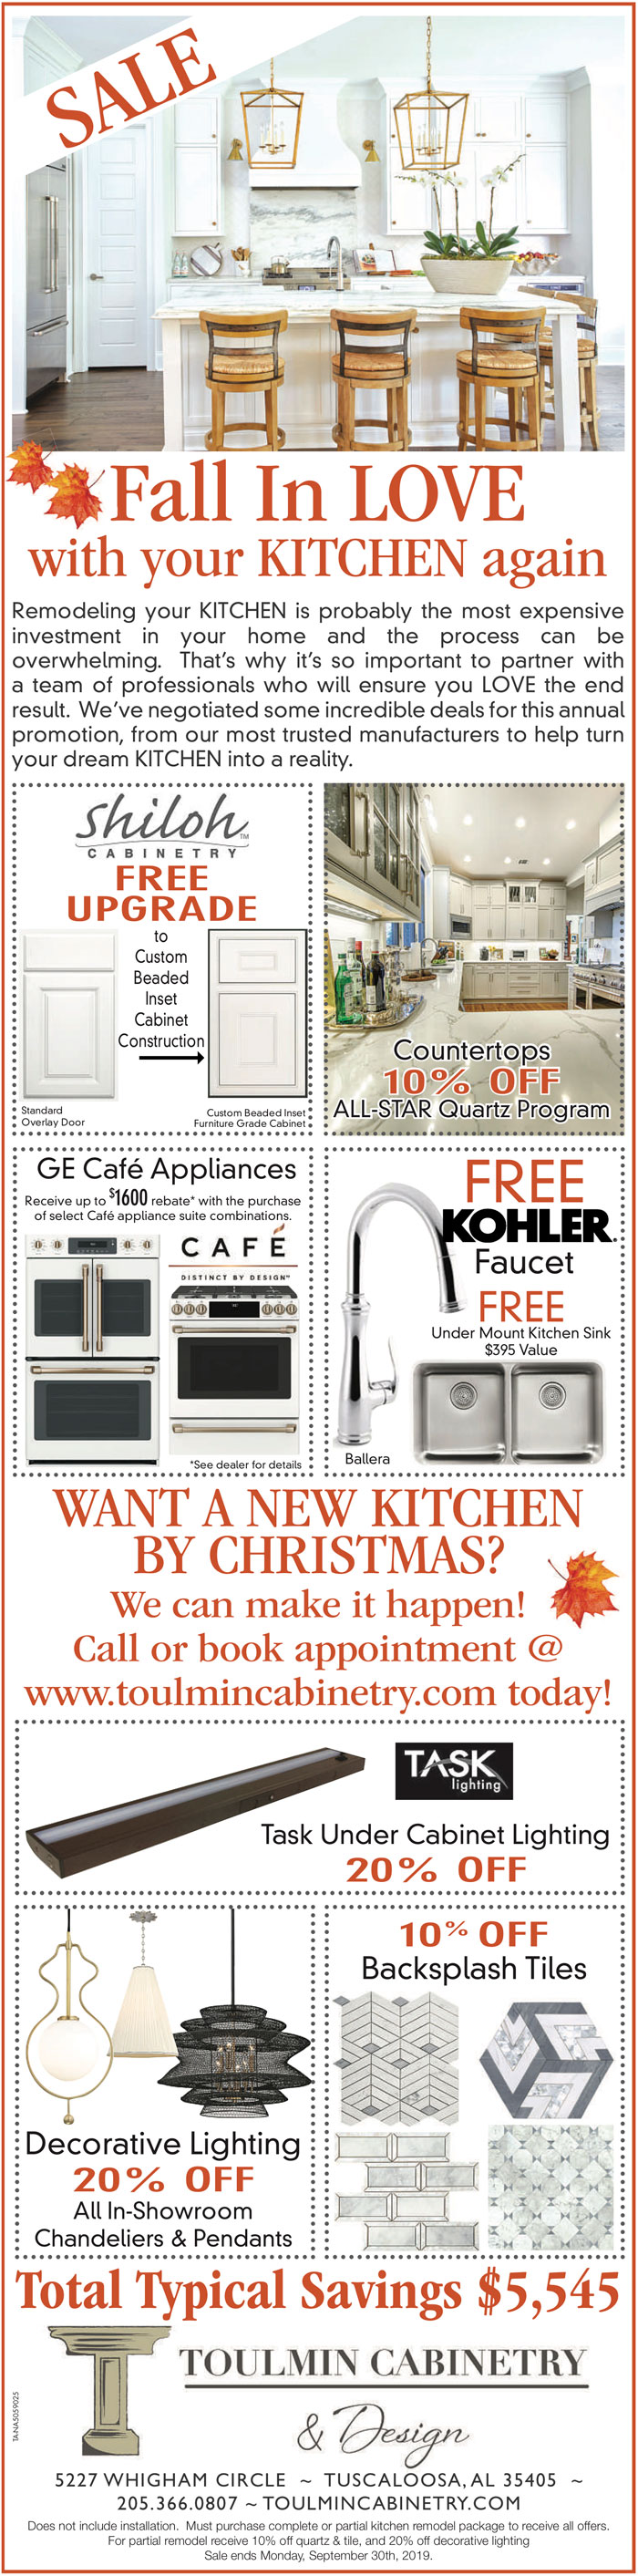 Fall In Love With Your Kitchen Sale - Toulmin Cabinetry & Design